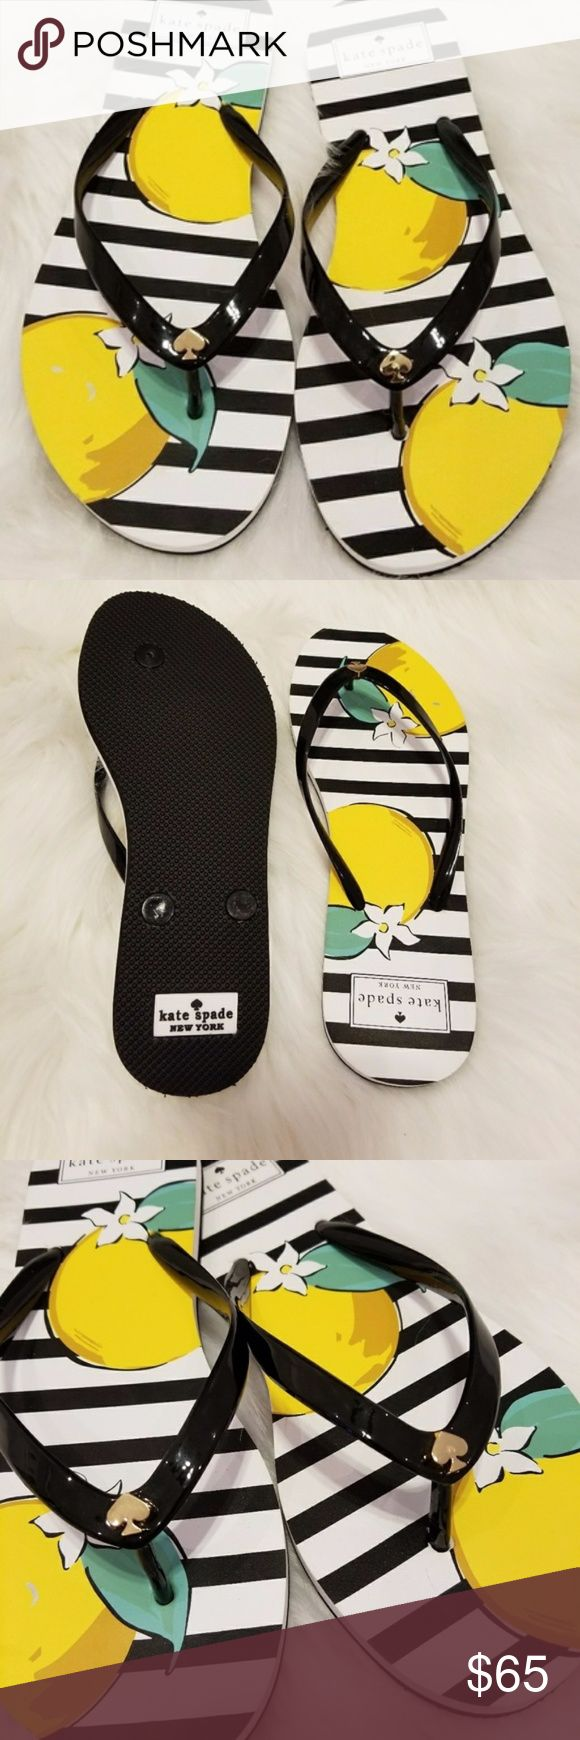 KATE SPADE stripe flip flops SIZE 7 New without box. Kate Spade summer days black and white stripe flip flops with flower design.  New from smoke and pet free home. kate spade Shoes